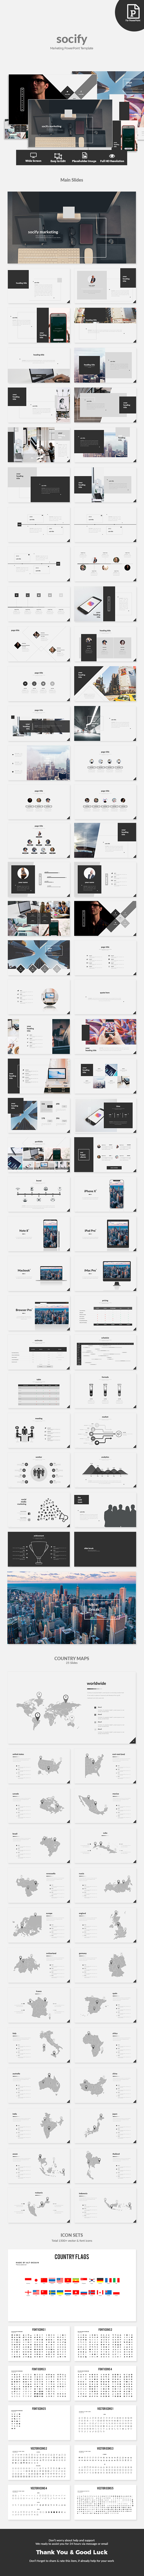 Socify - Marketing PowerPoint Template - Business PowerPoint Templates